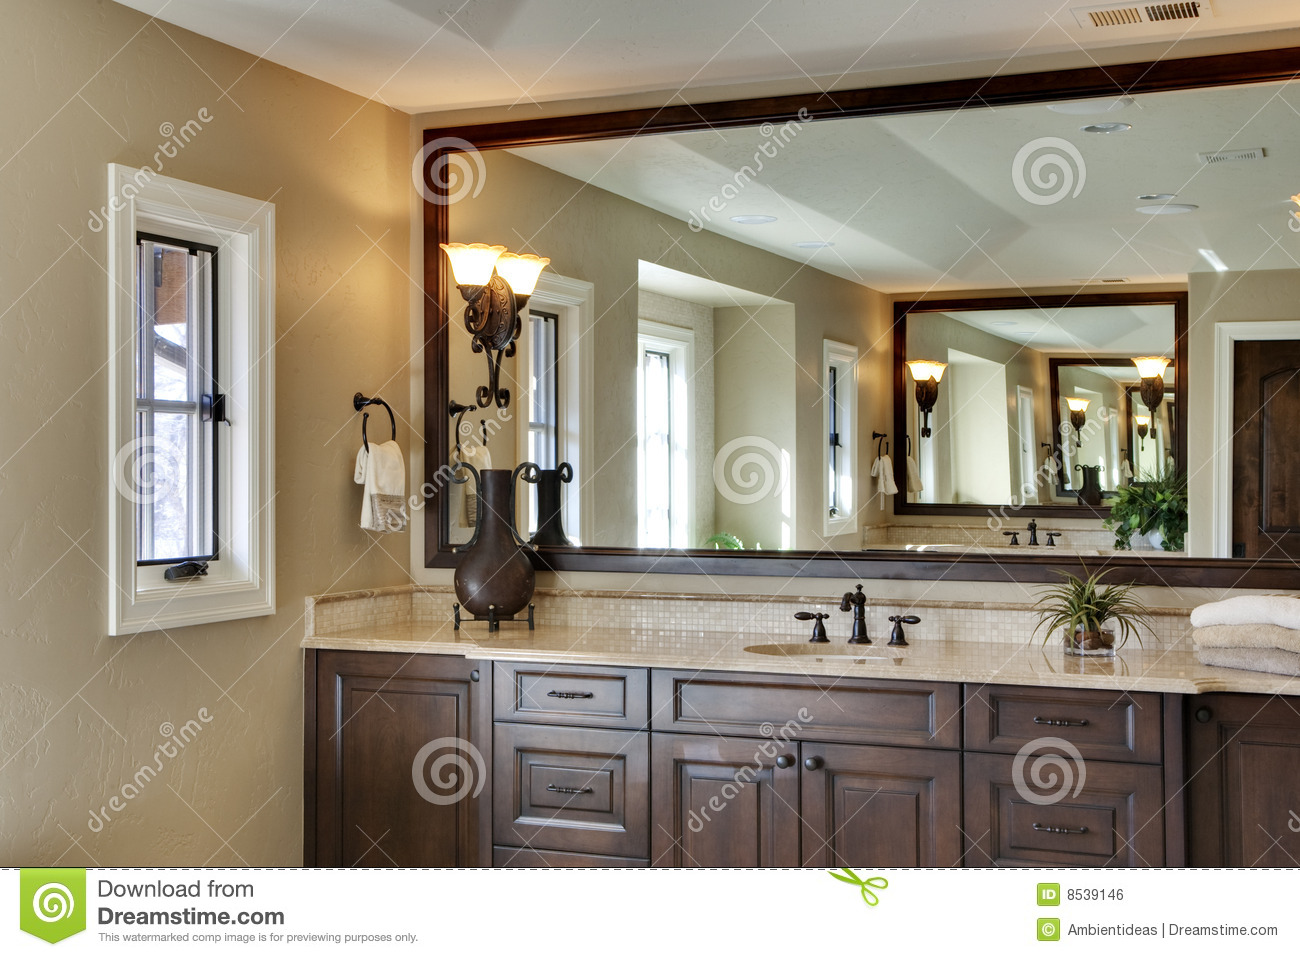 Bathroom with large mirror royalty free stock image for Salle de bain 1m de large